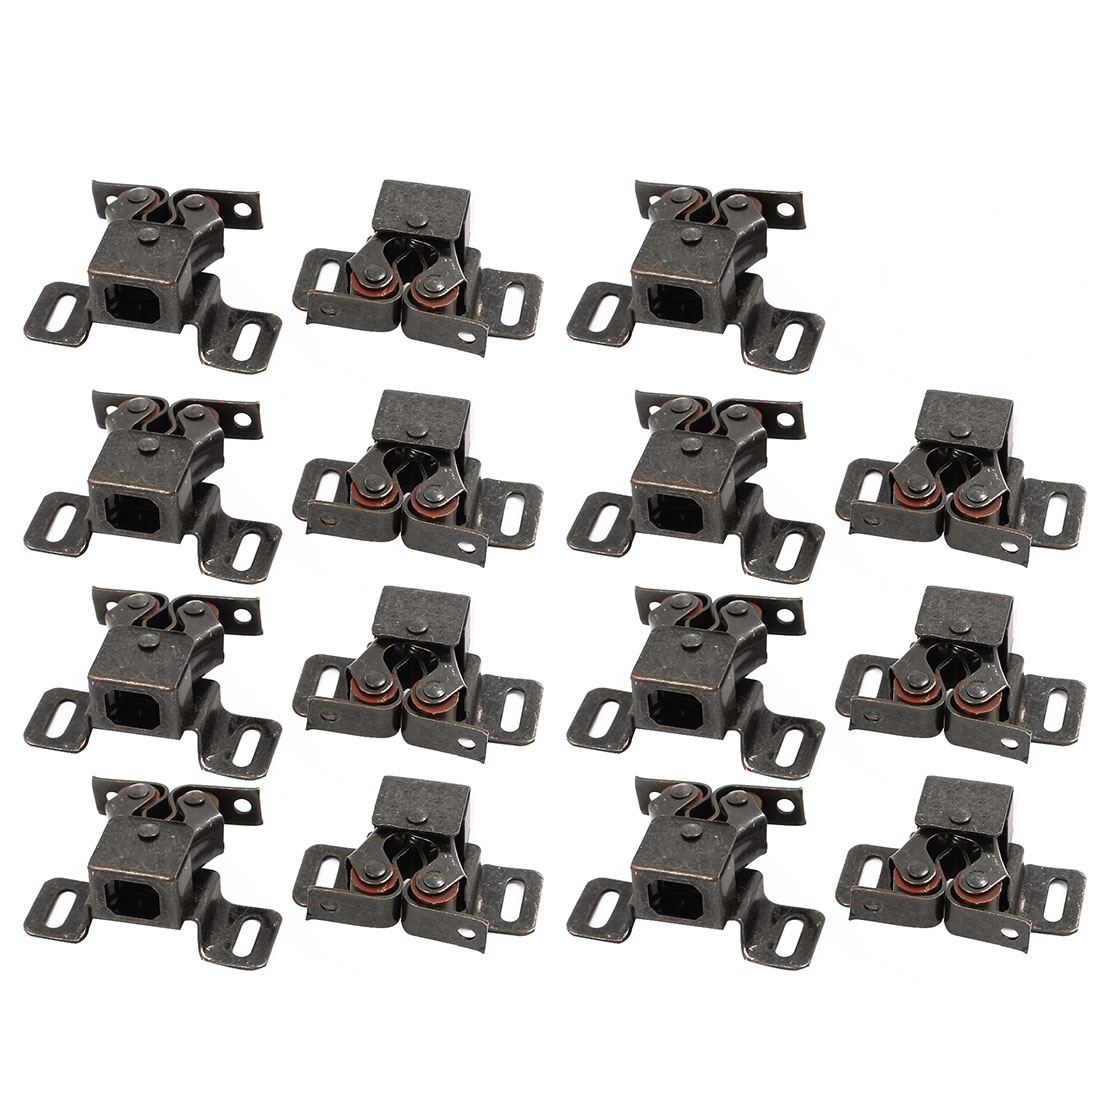 Cupboard Cabinet Door Double Ball Roller Catch Latch 46x30x20mm Bronze 15pcs